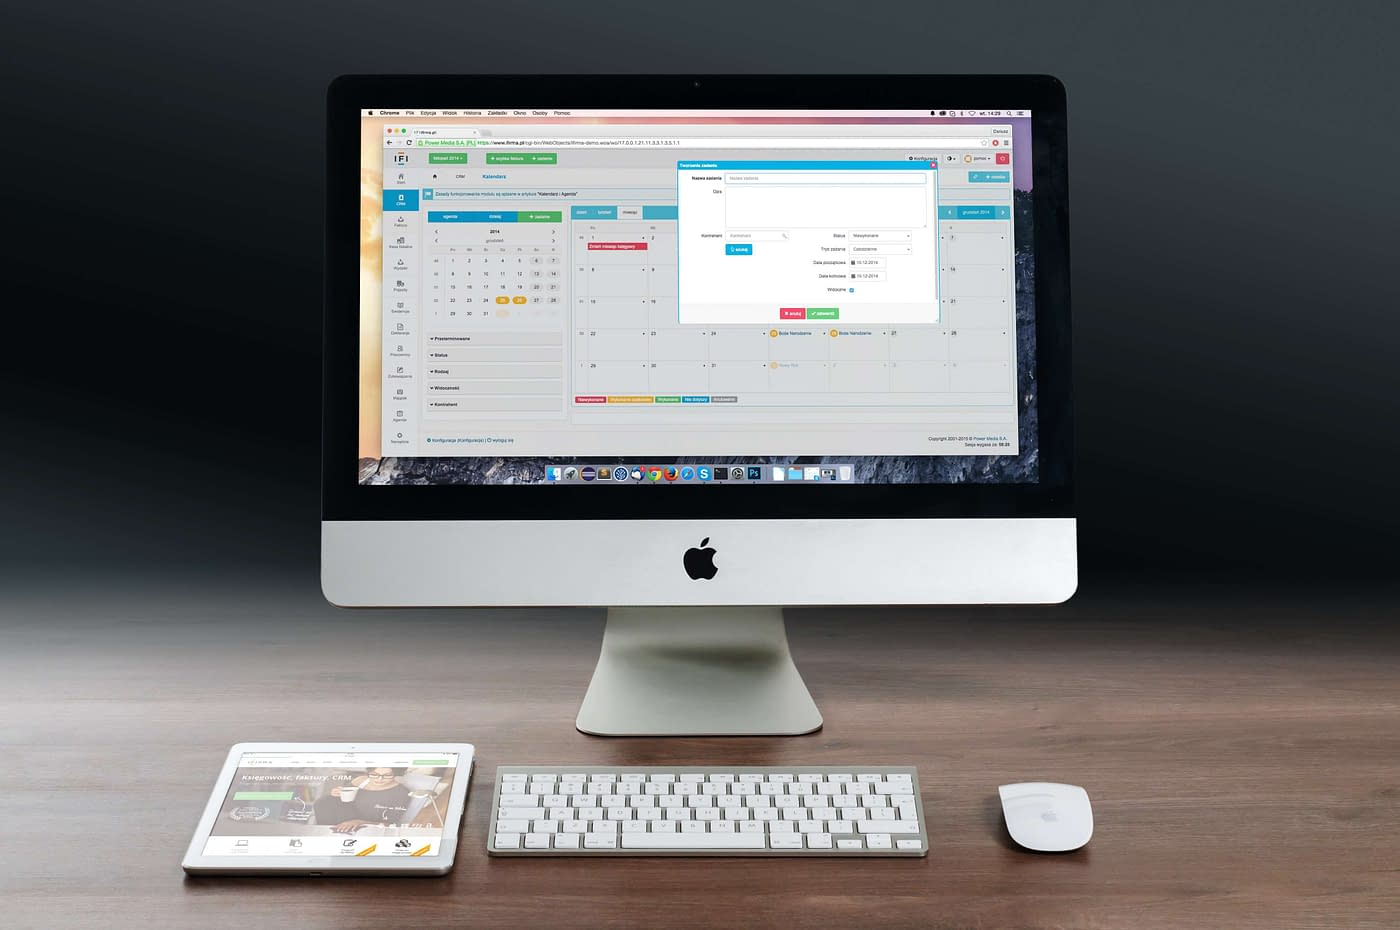 mac showing software being used